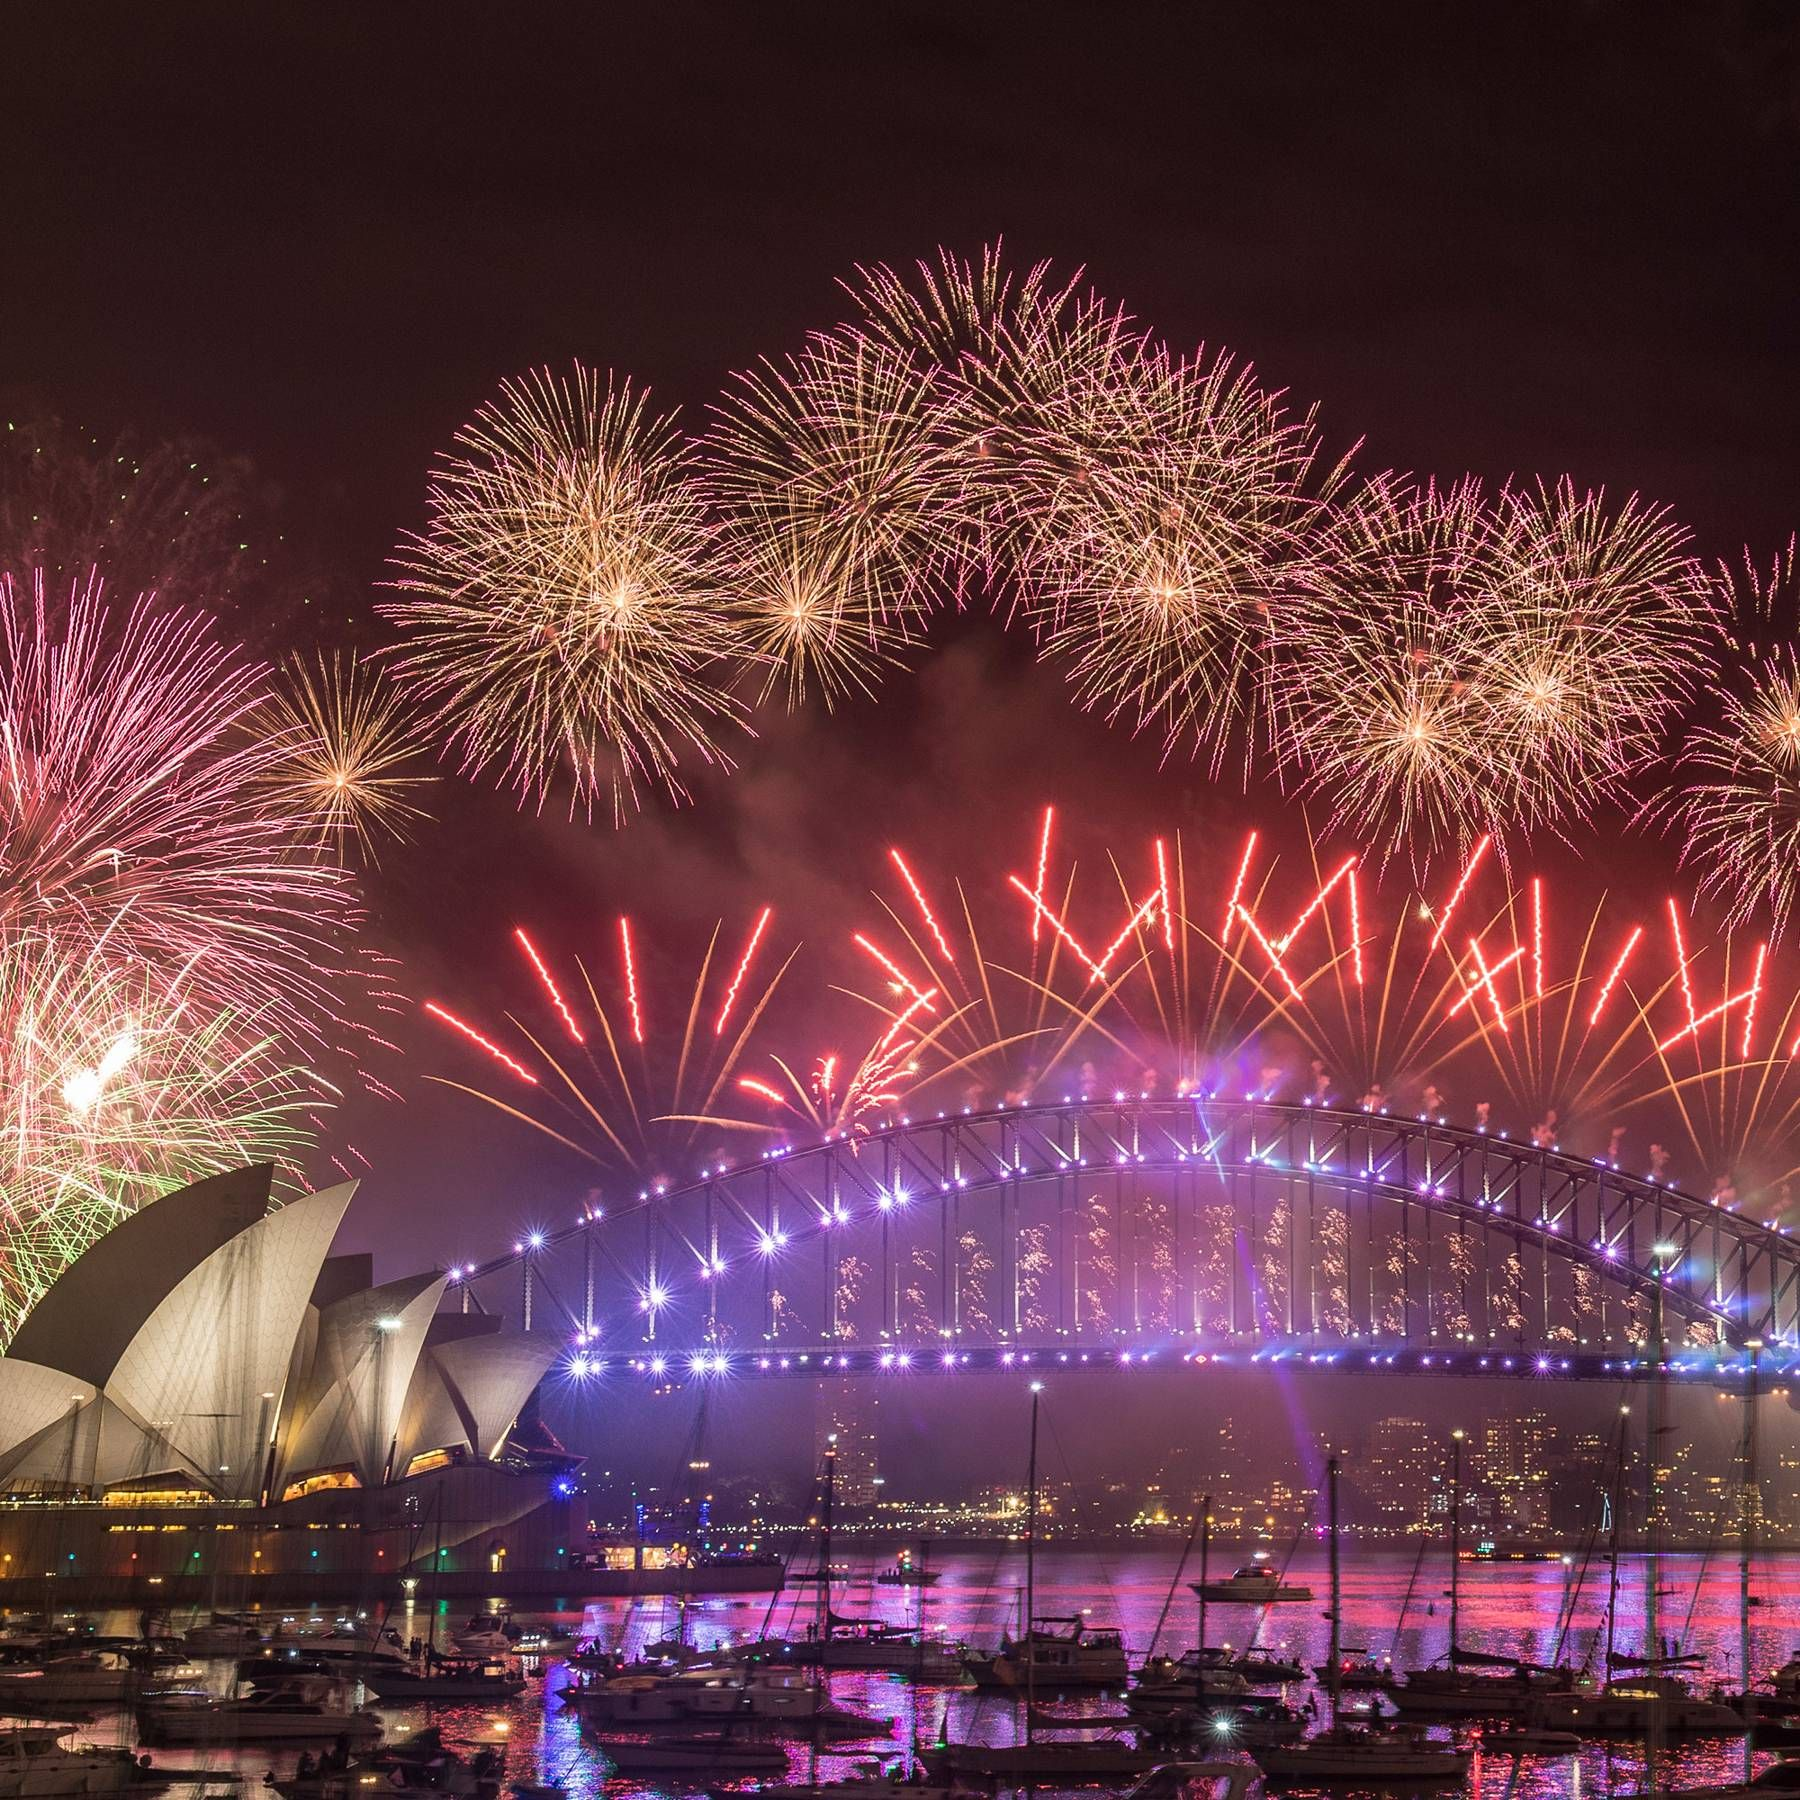 The Best New Year S Eve Holiday Destinations Around The World 2020 New Year S Eve Around The World New Year Fireworks Celebration Around The World